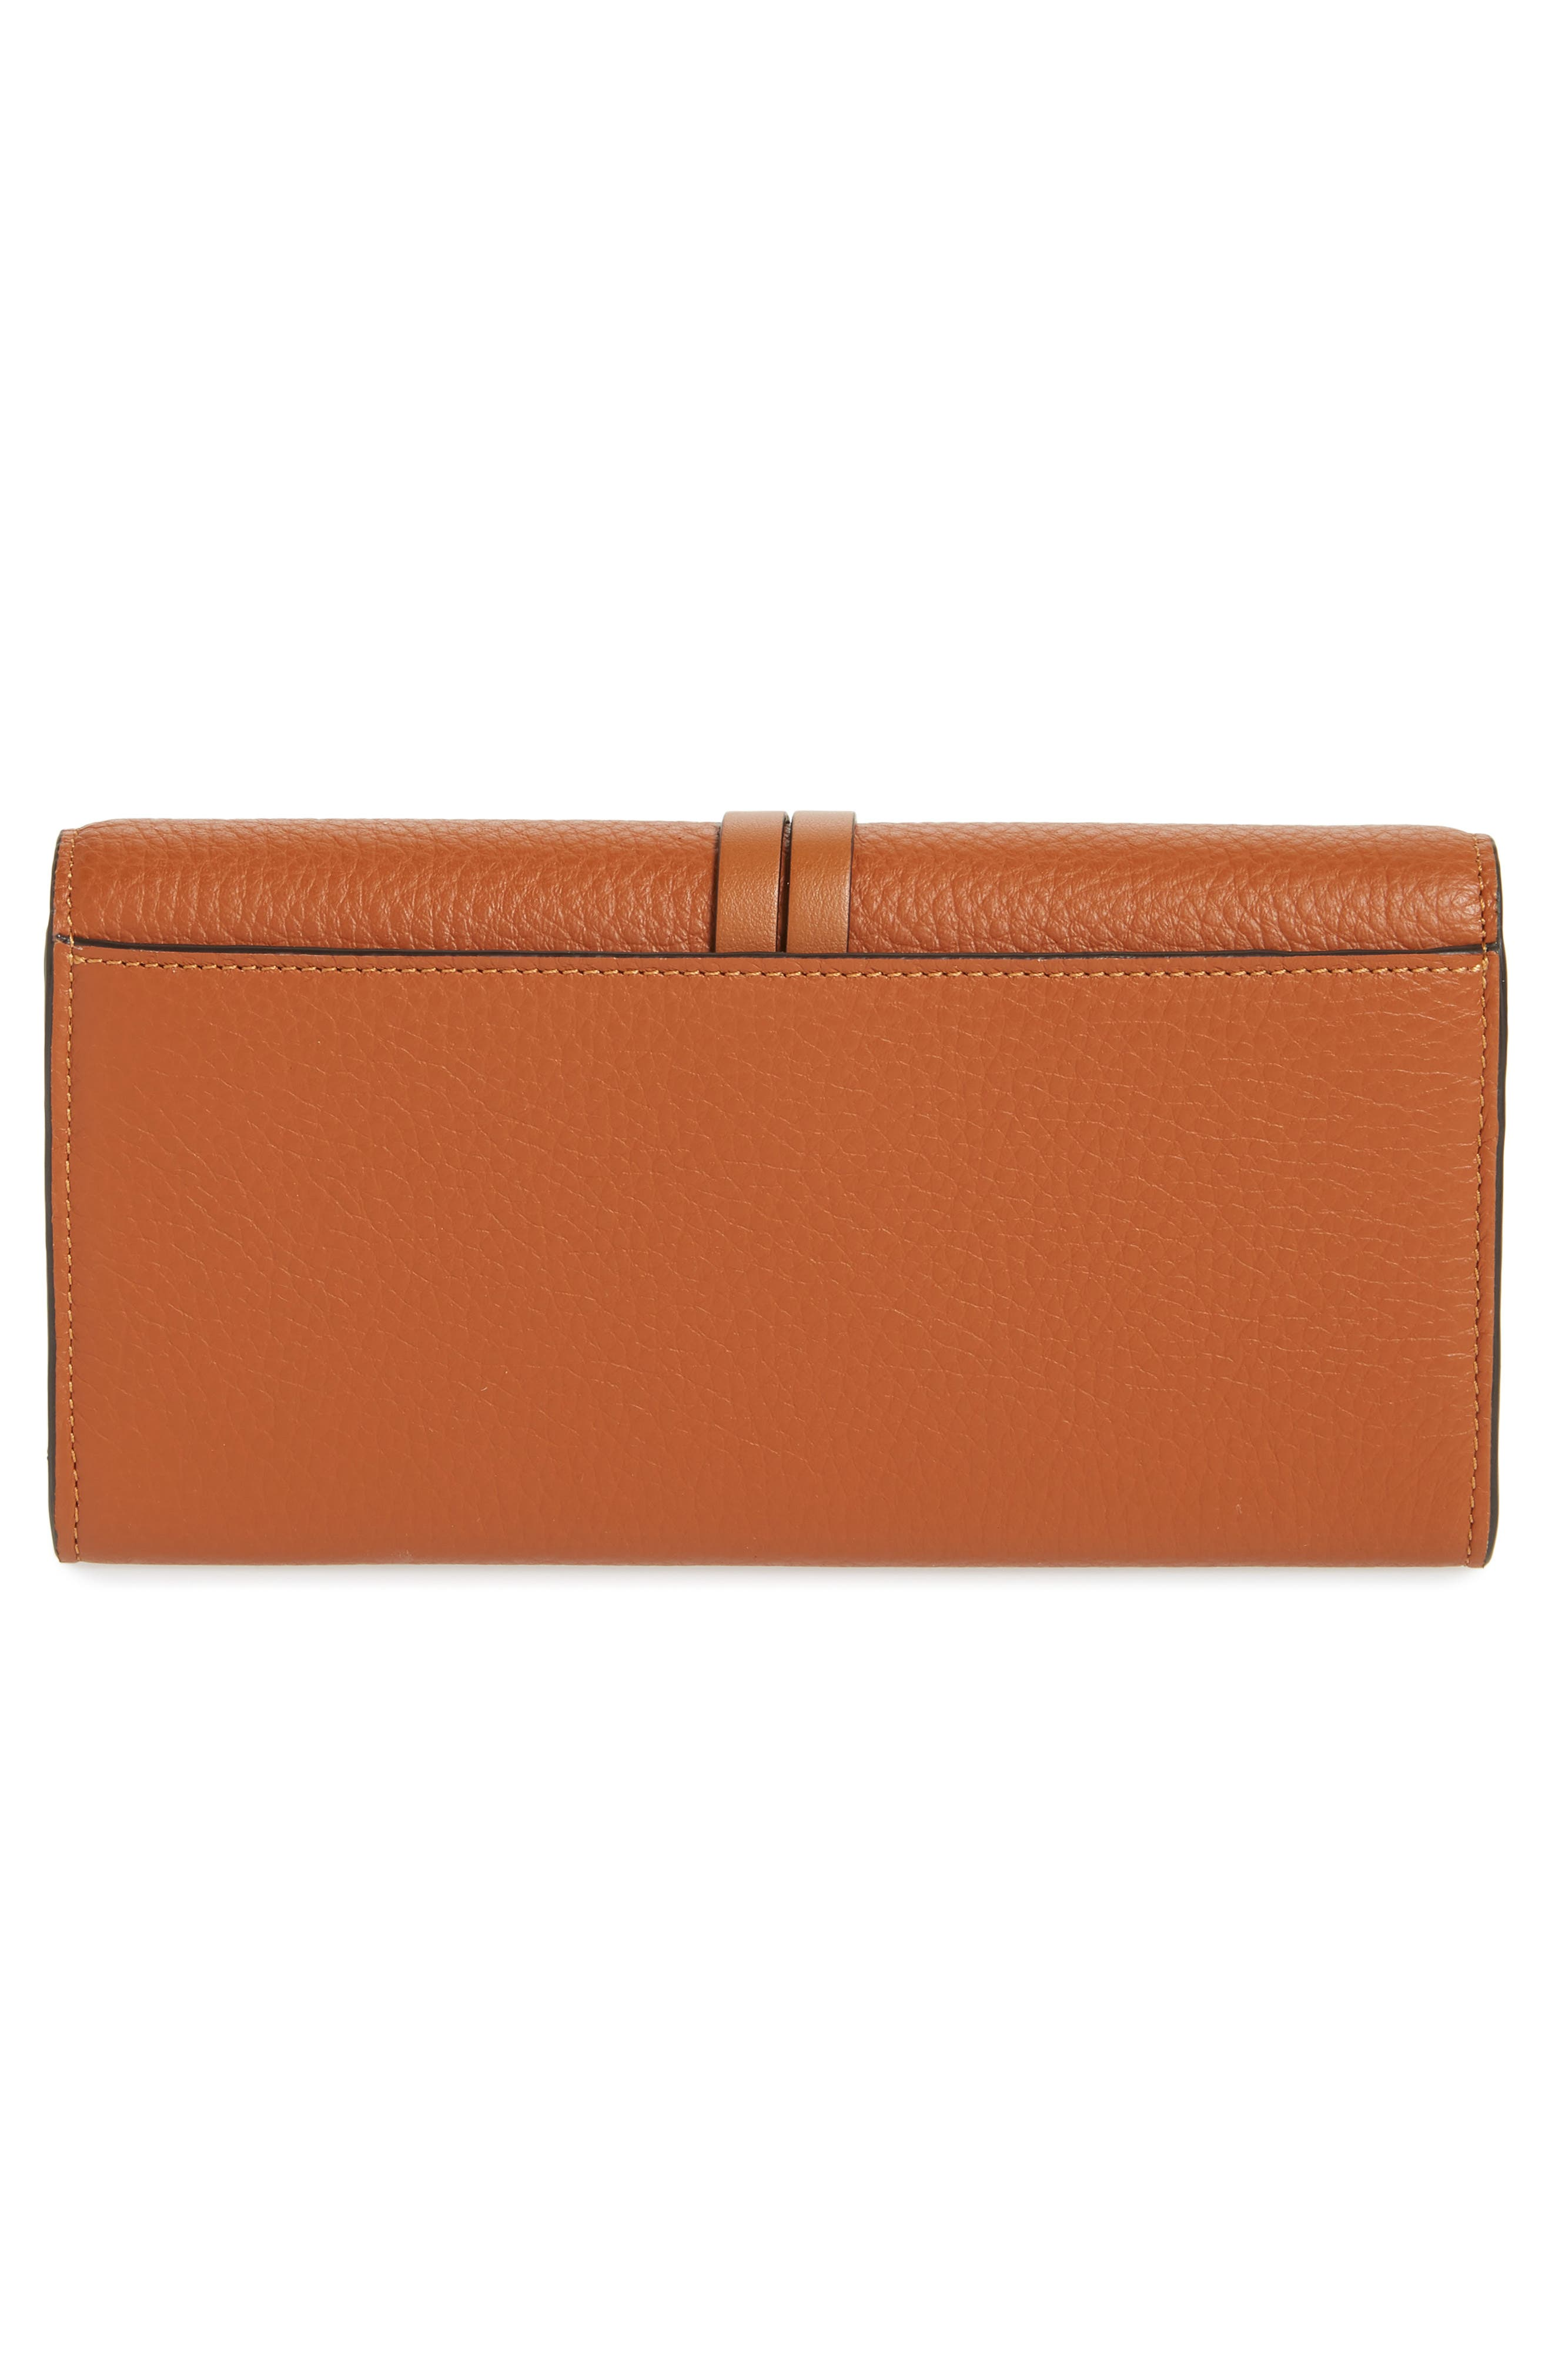 Alphabet Leather Wallet,                             Alternate thumbnail 3, color,                             TAN